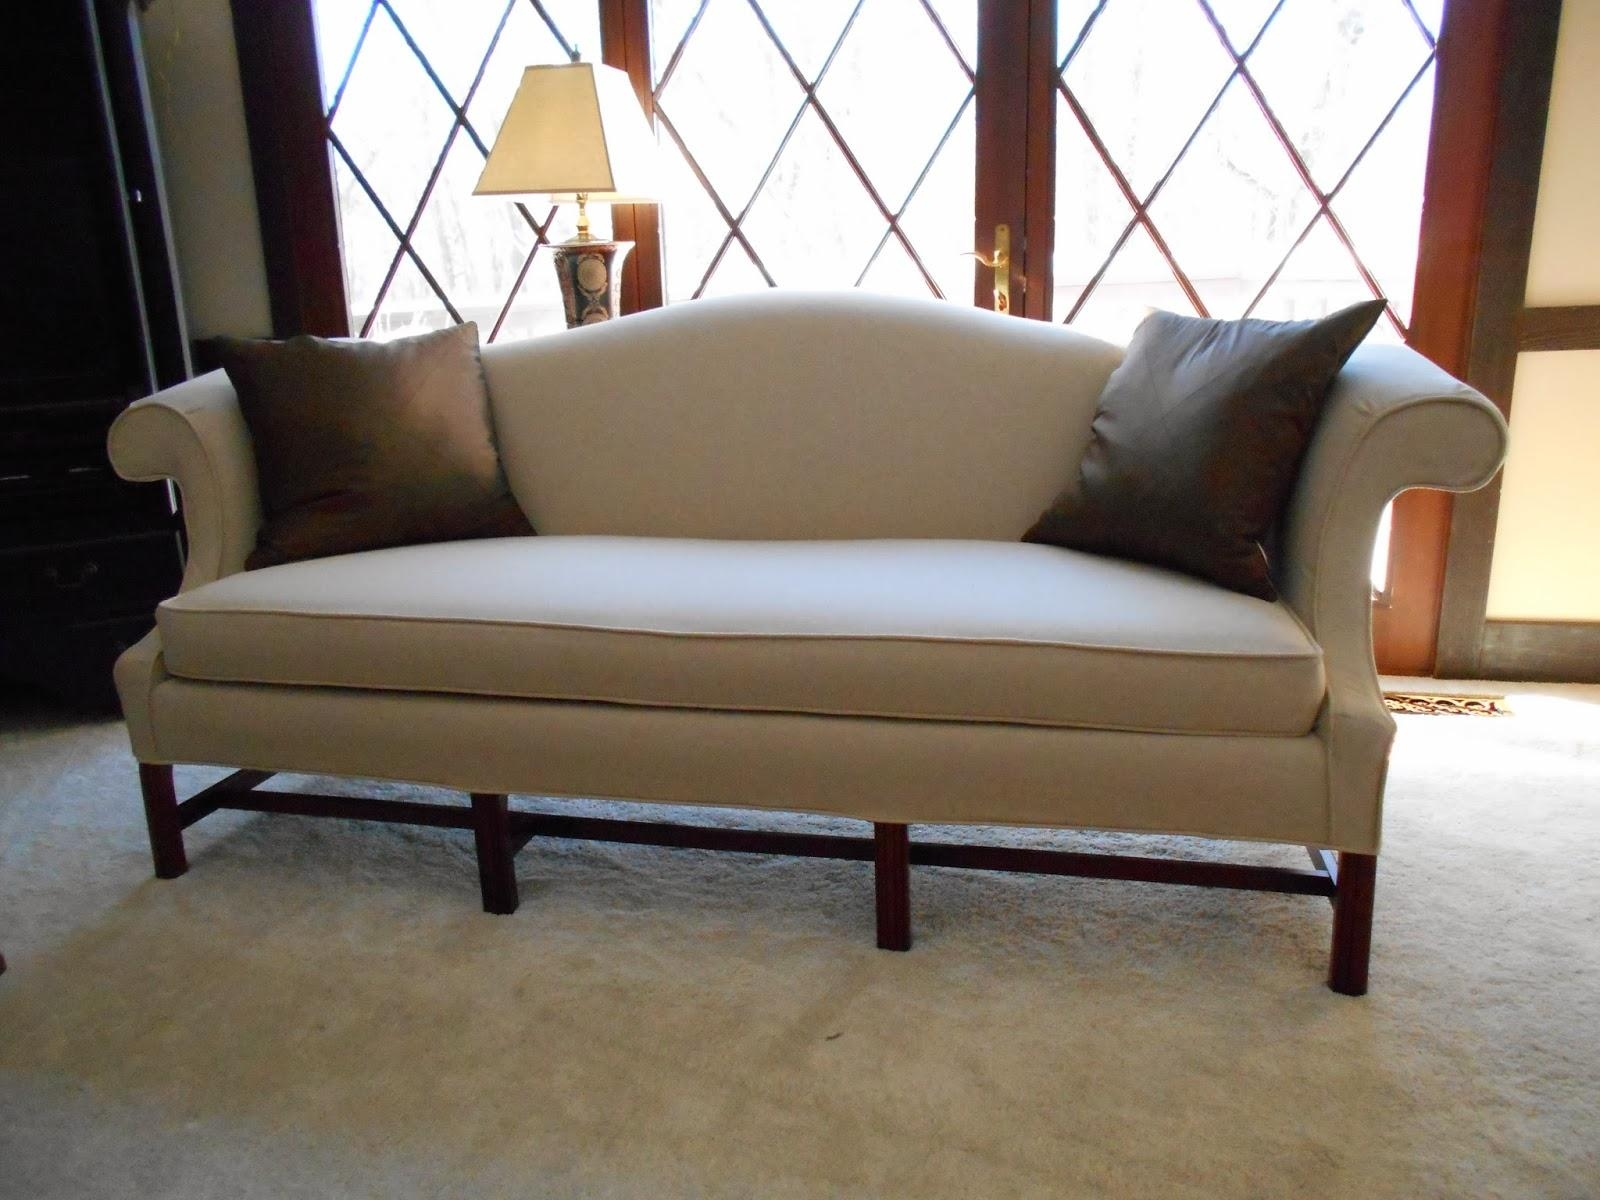 Couch Covers For Couches With Pillow Backs – Laura Williams Intended For Camel Back Couch Slipcovers (Image 4 of 20)